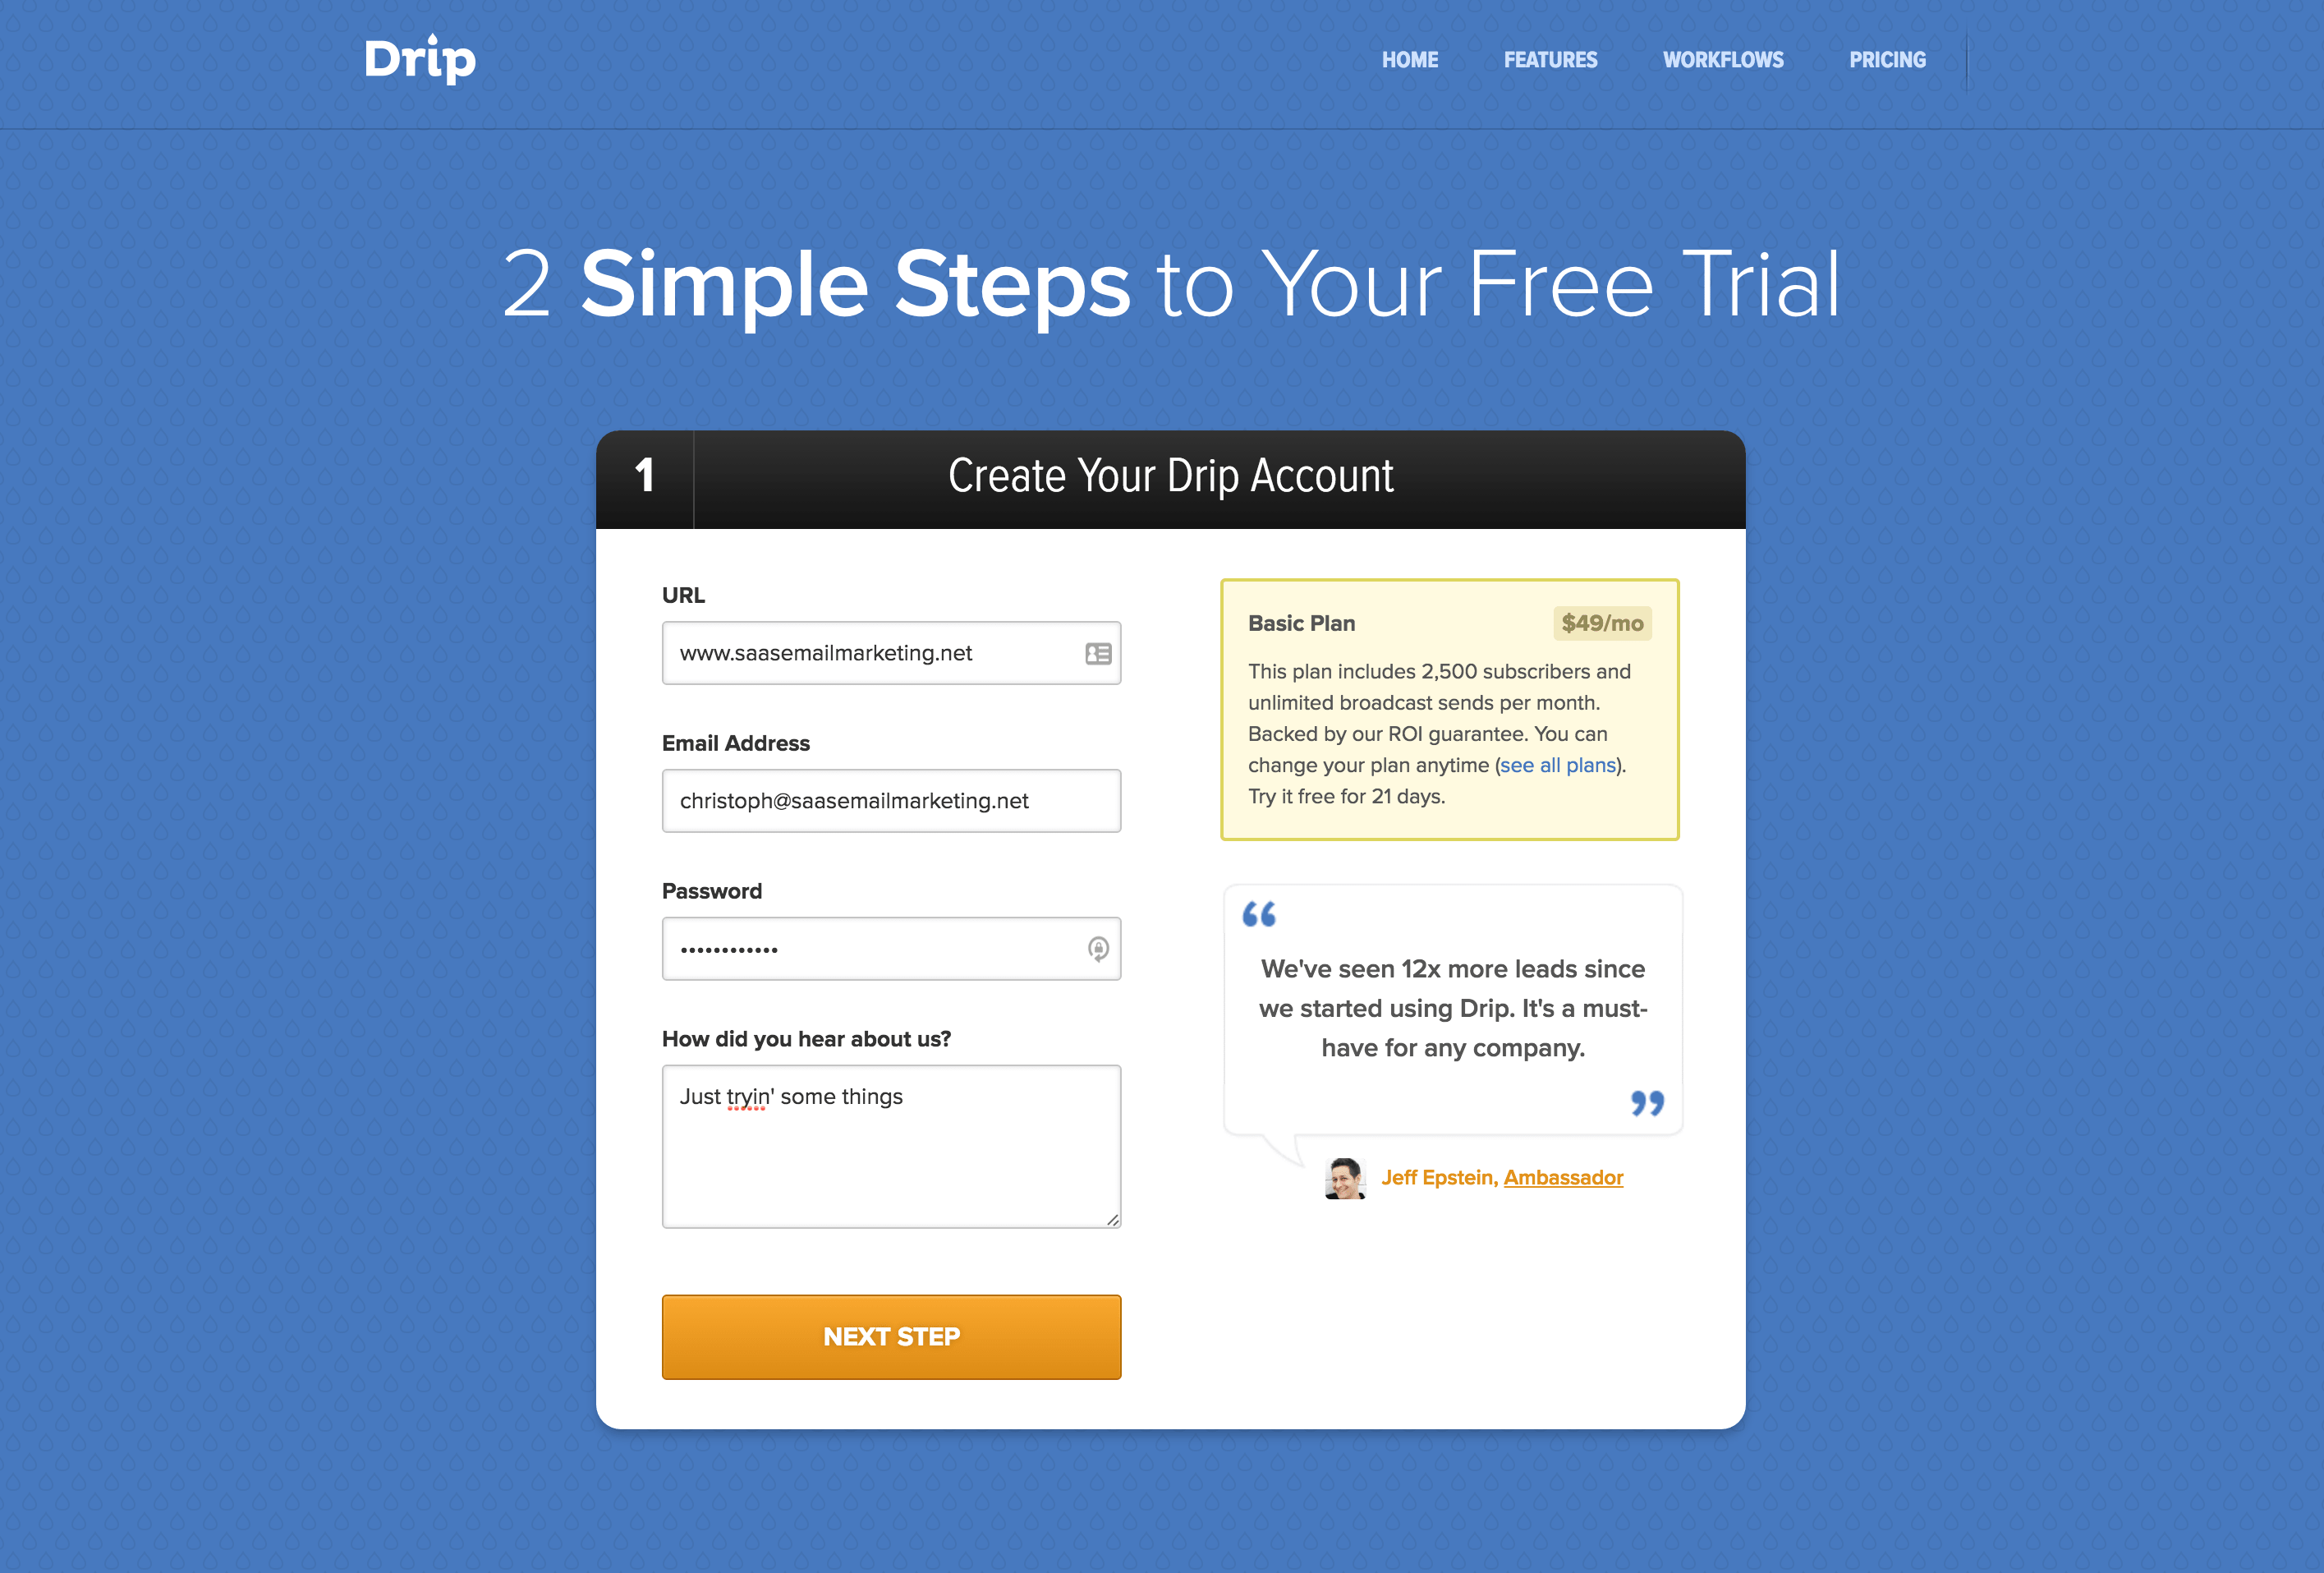 signup abandonment emails case study how drip increased trial